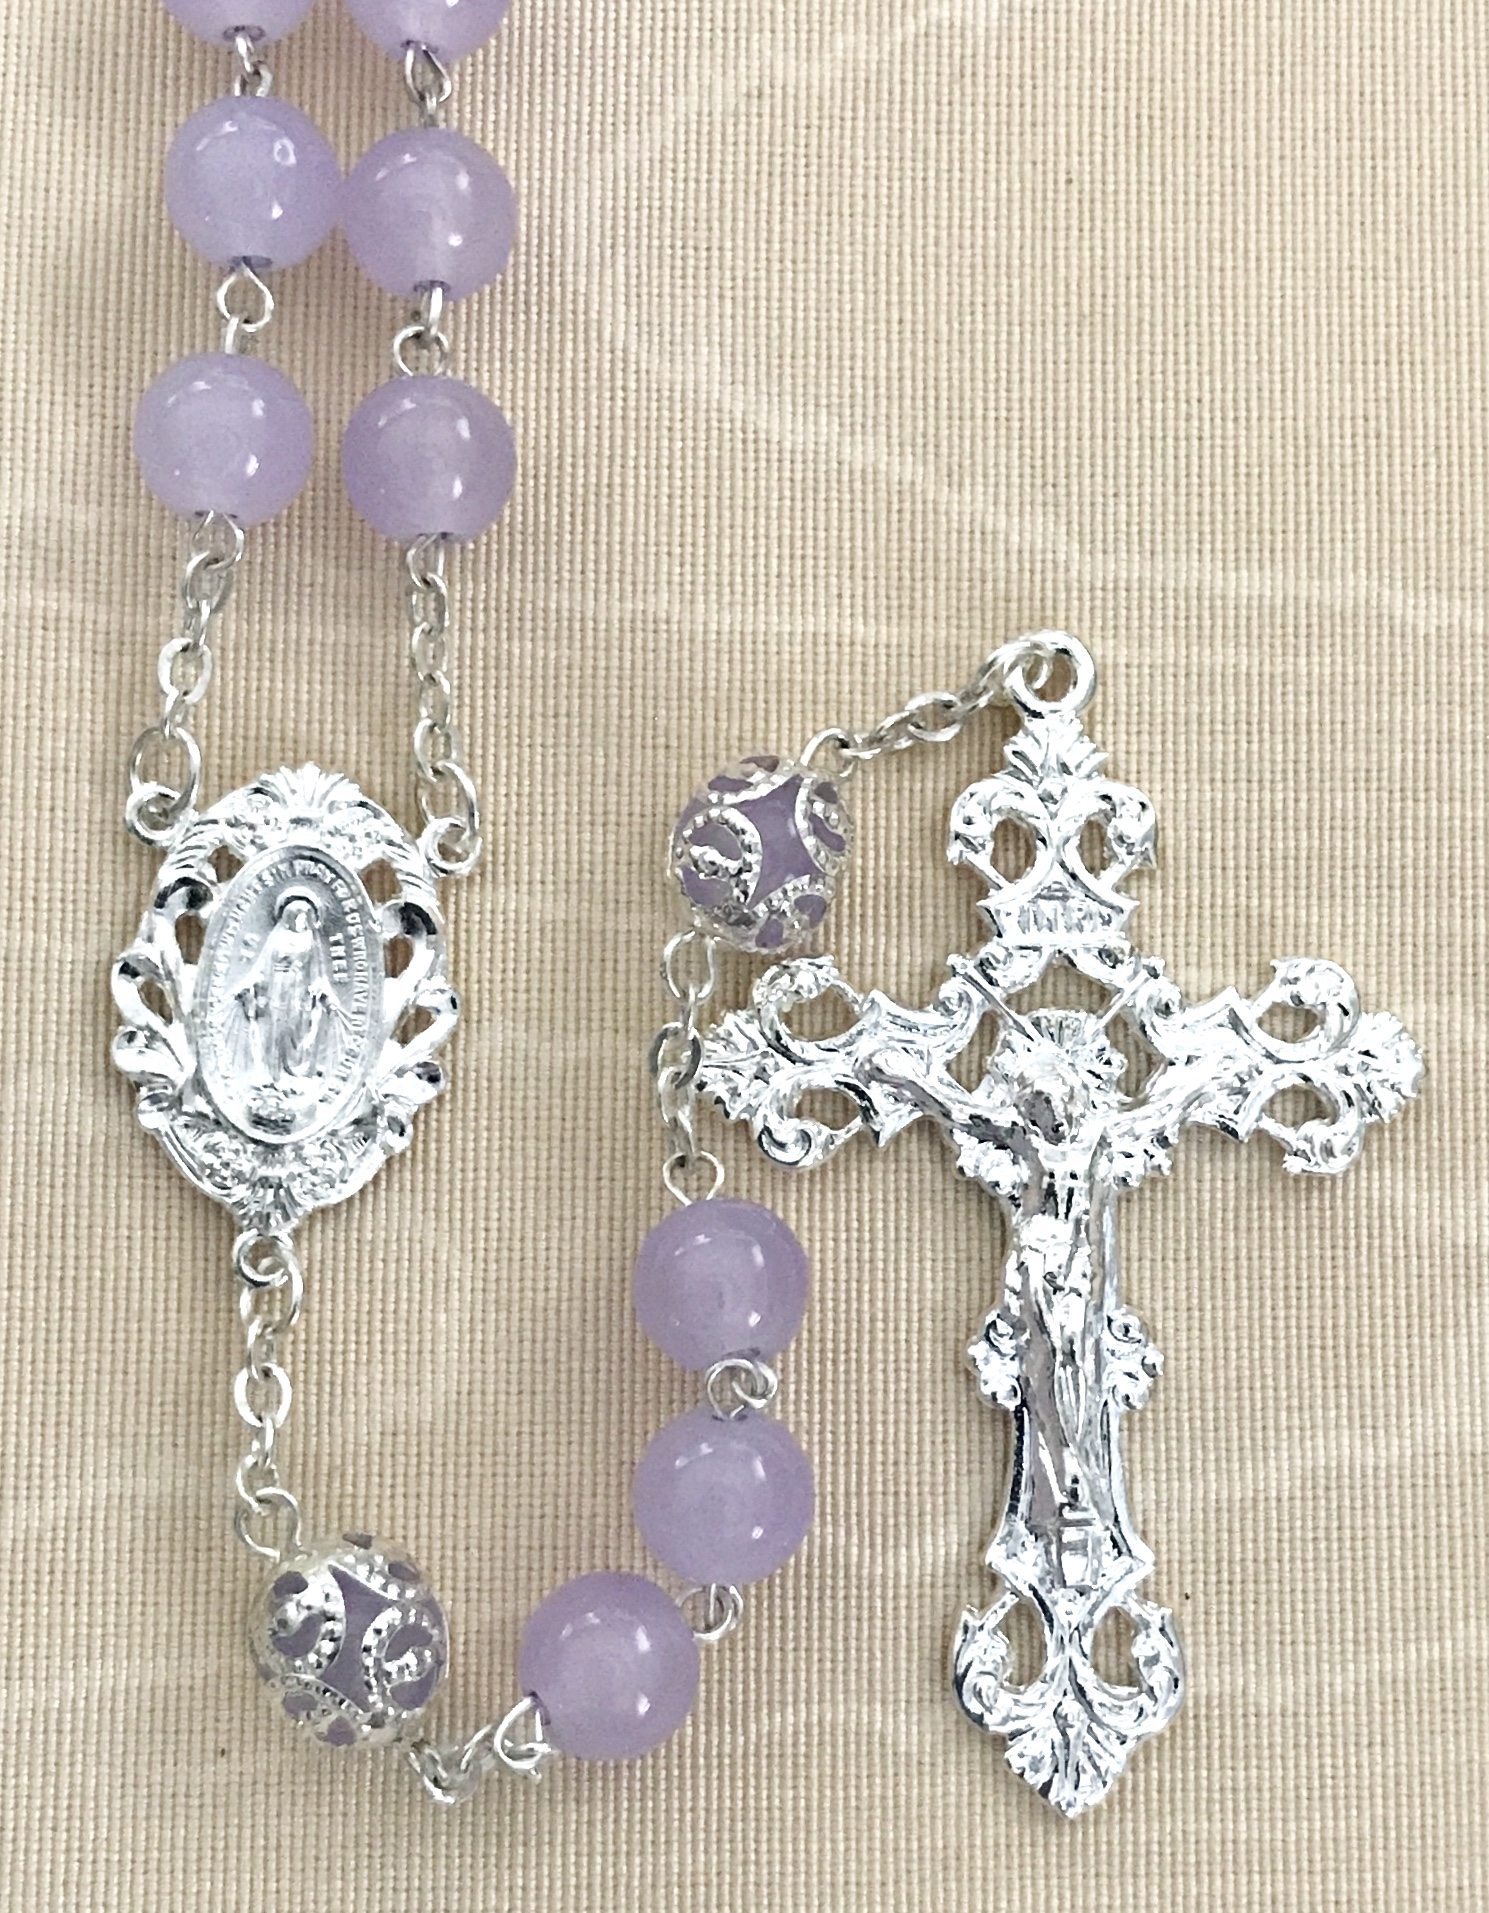 8mm AMETHYST  ROMAGNA ROSARY WITH CAPPED OUR FATHER BEADS AND STERLING SILVER PLATED CRUCIFIX AND CENTER GIFT BOXED